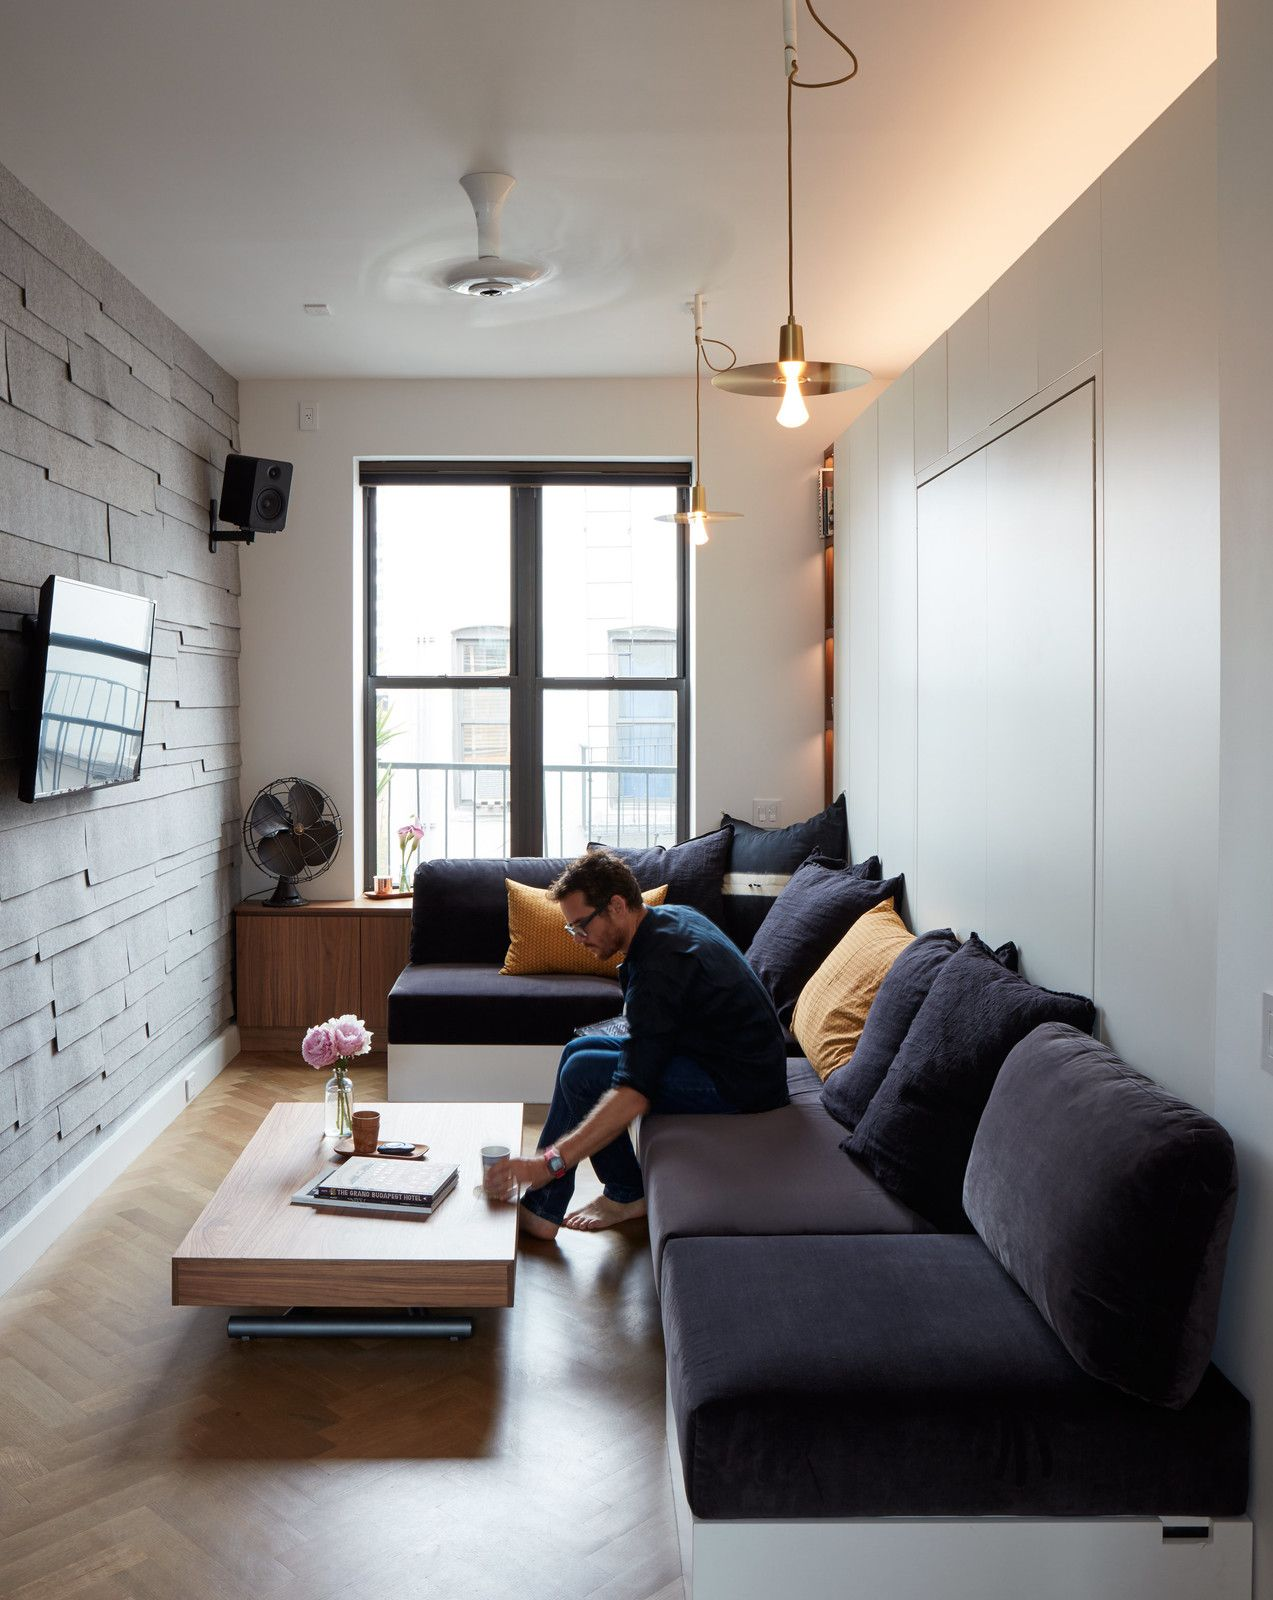 Small Space Living in a SoHo Apartment | Modern Living Room ...